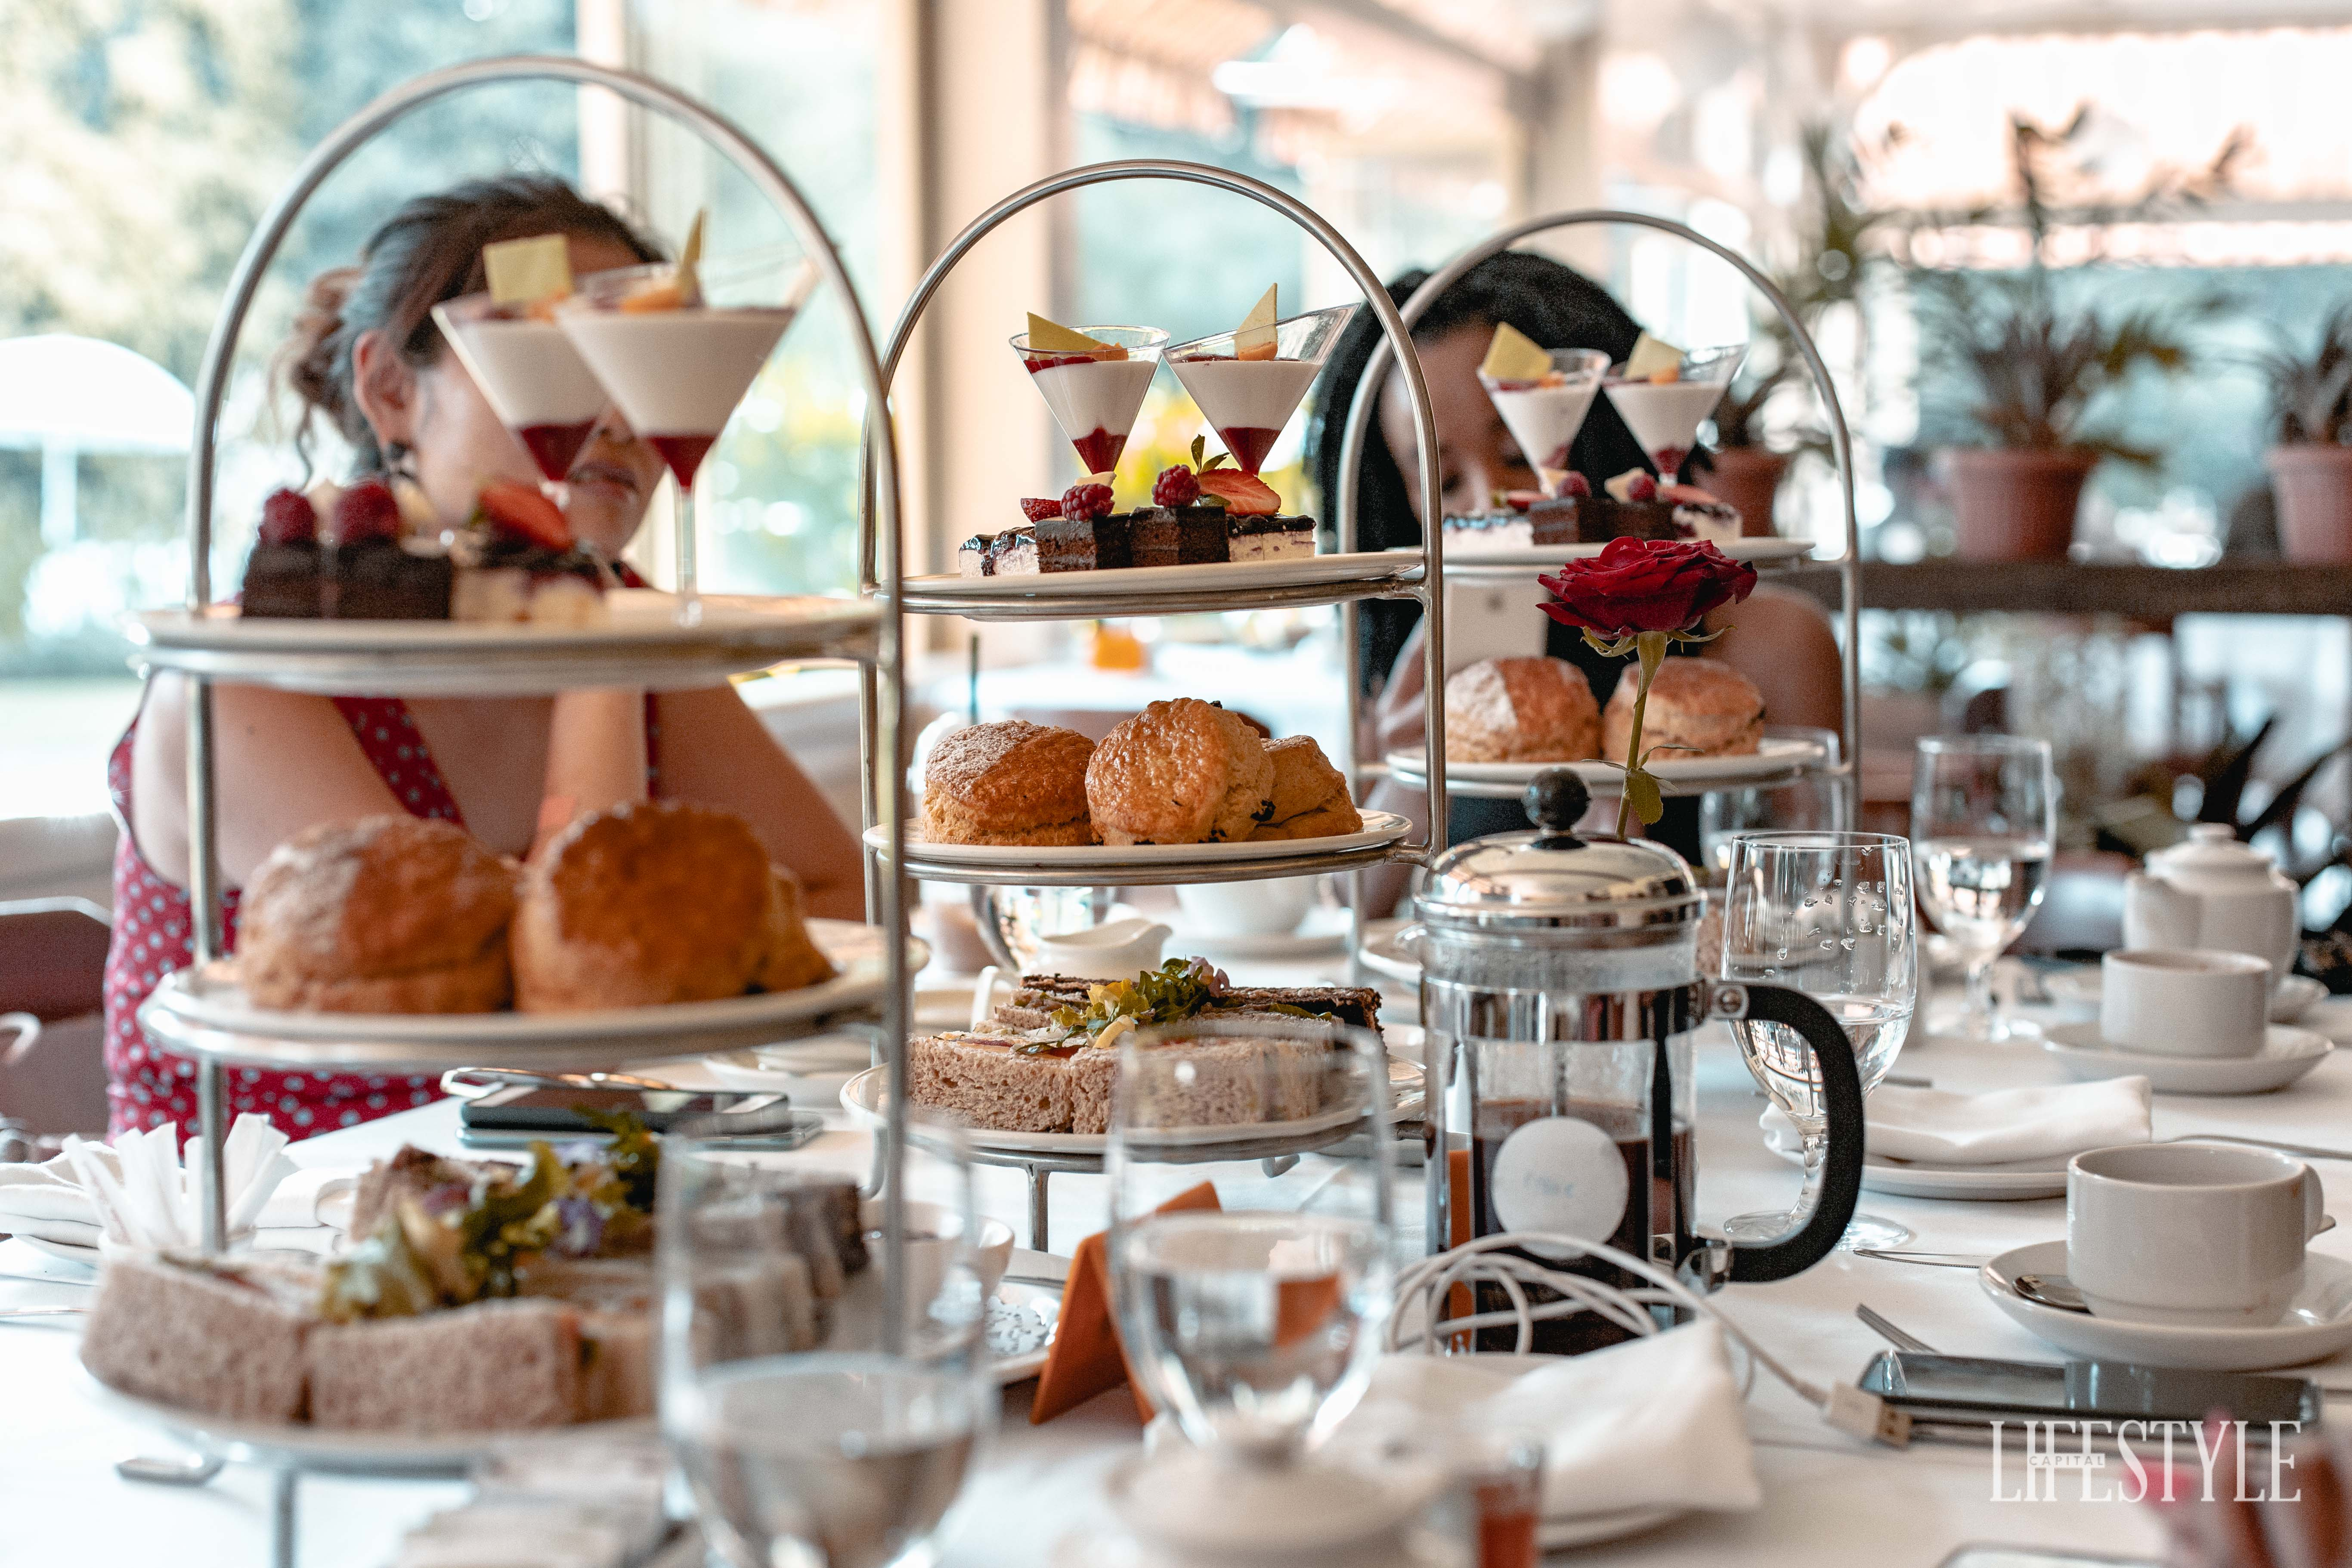 4 Of The Best Luxury Spots For Afternoon Tea In Nairobi photo